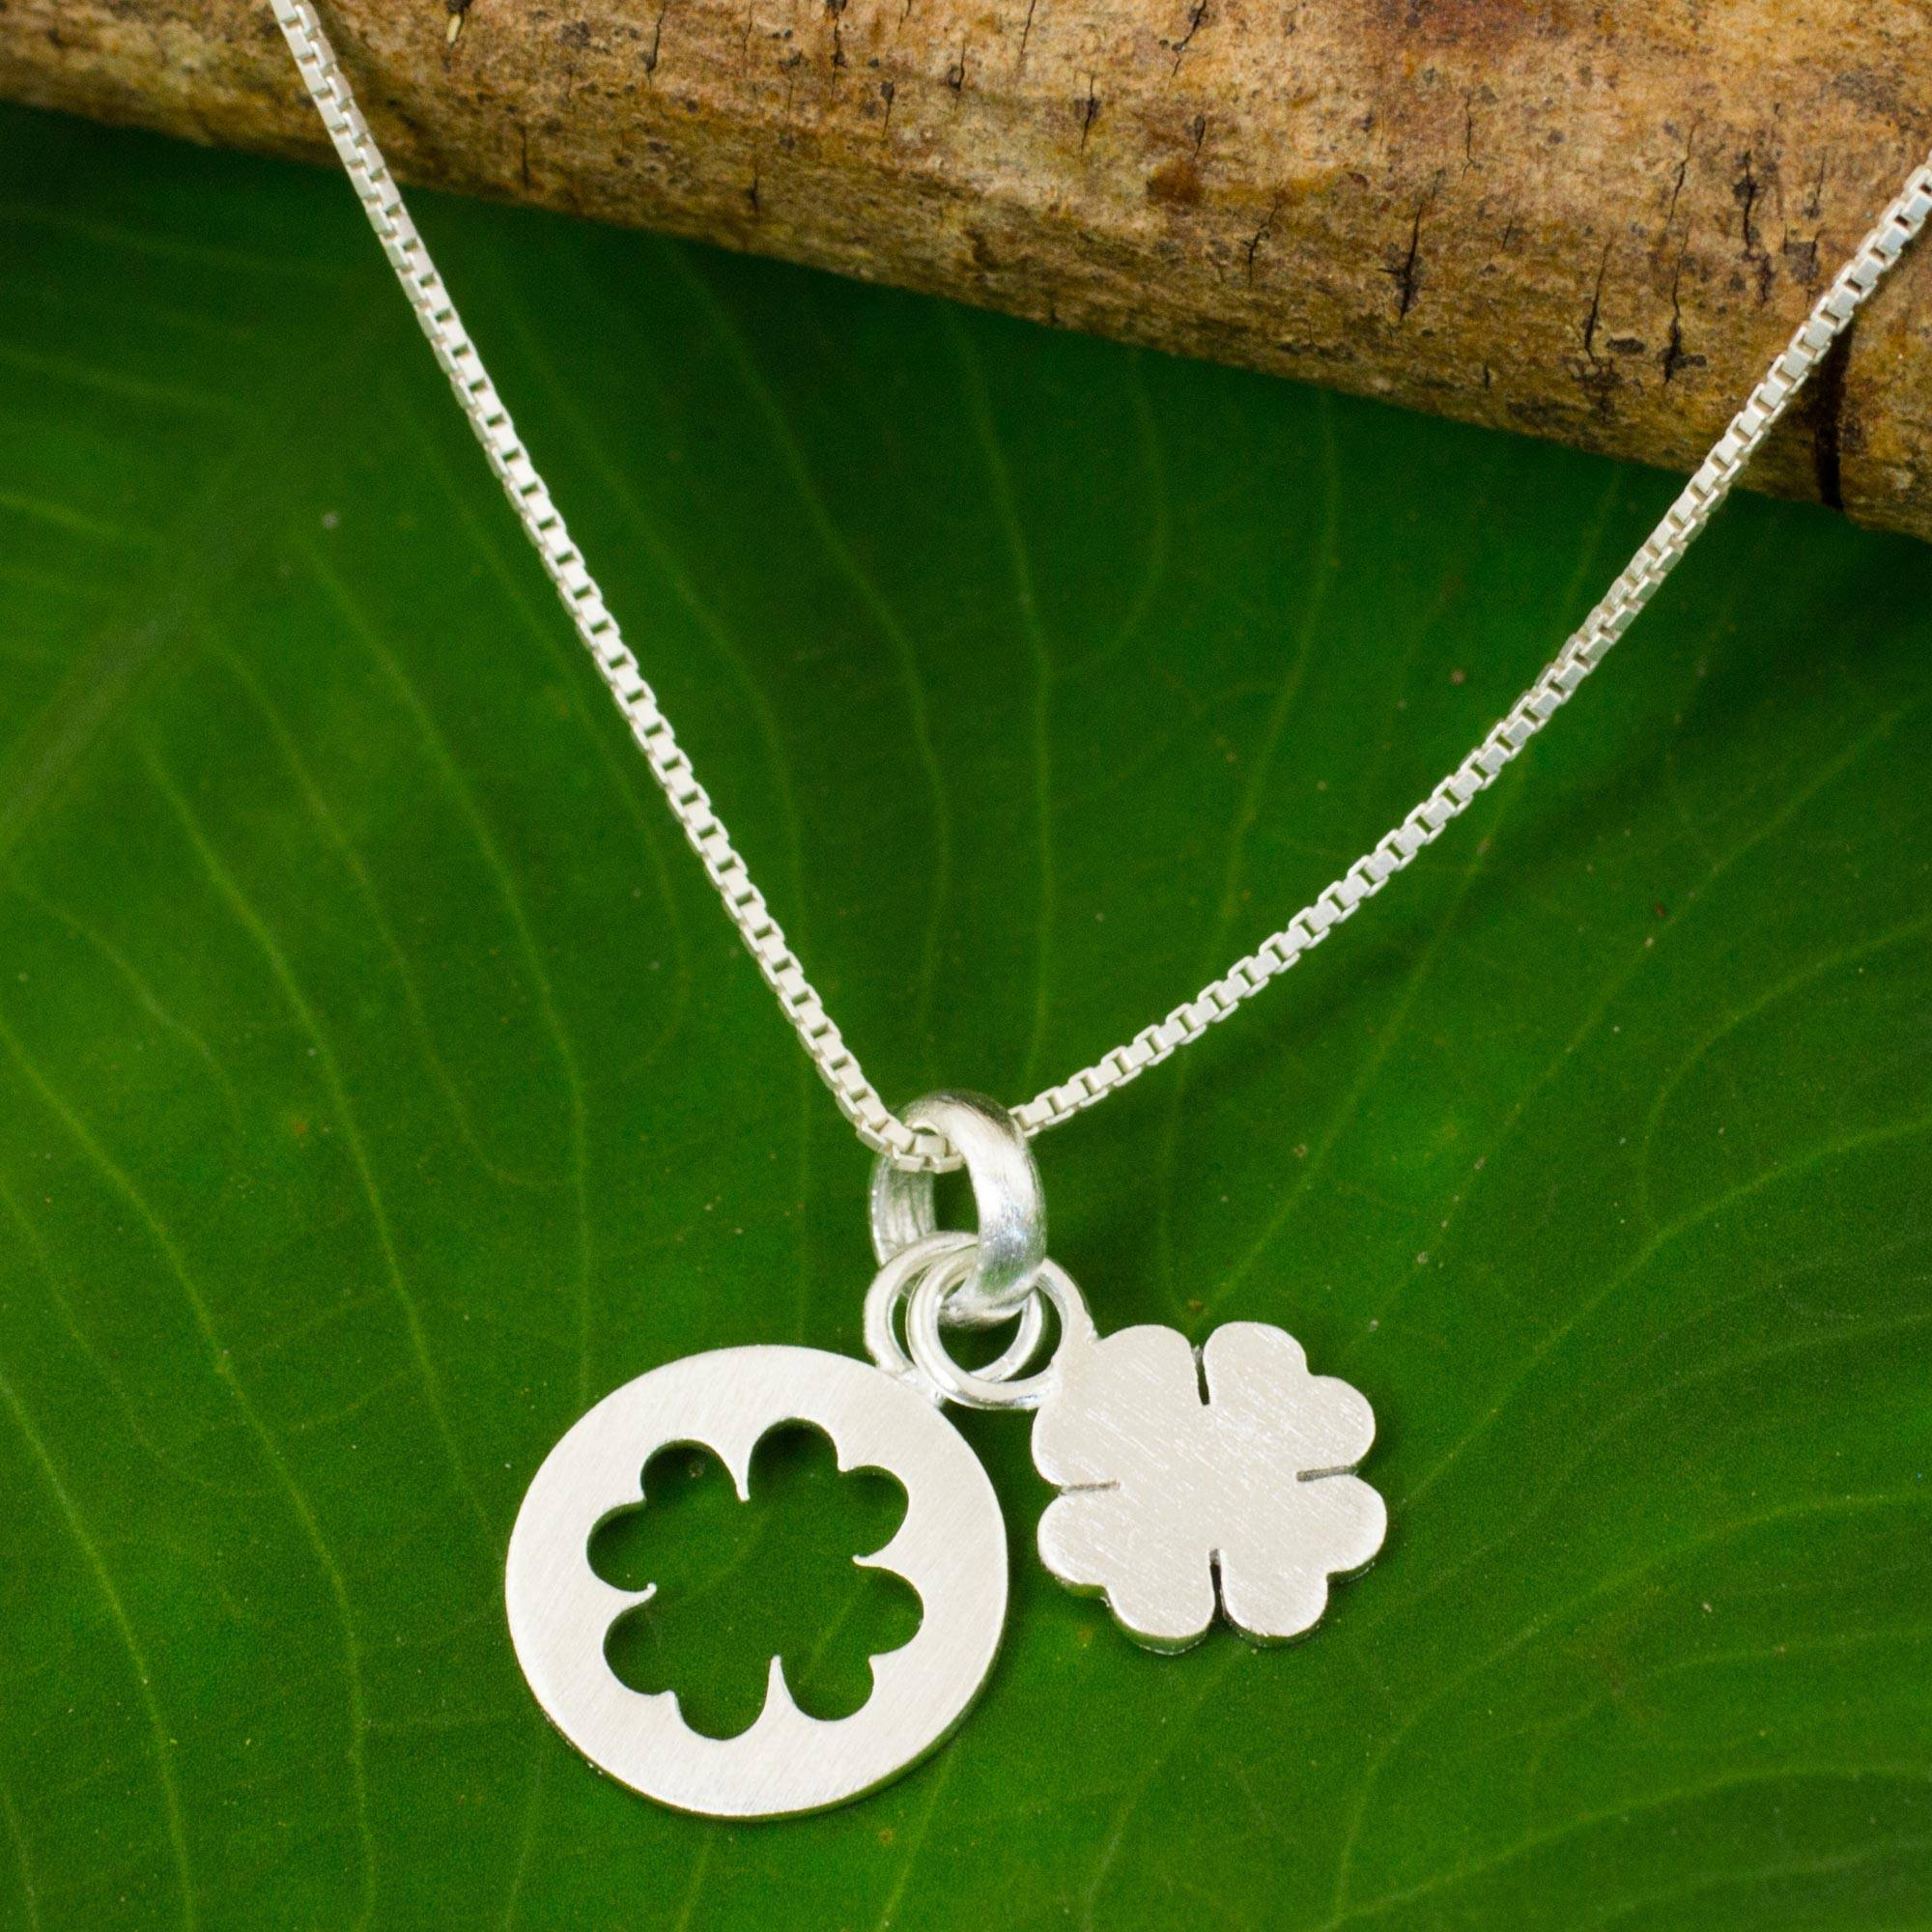 Unicef Uk Market | Thai Brushed Sterling Silver Lucky Clover Pendant Intended For Best And Newest Lucky Four Leaf Clover Pendant Necklaces (View 9 of 25)